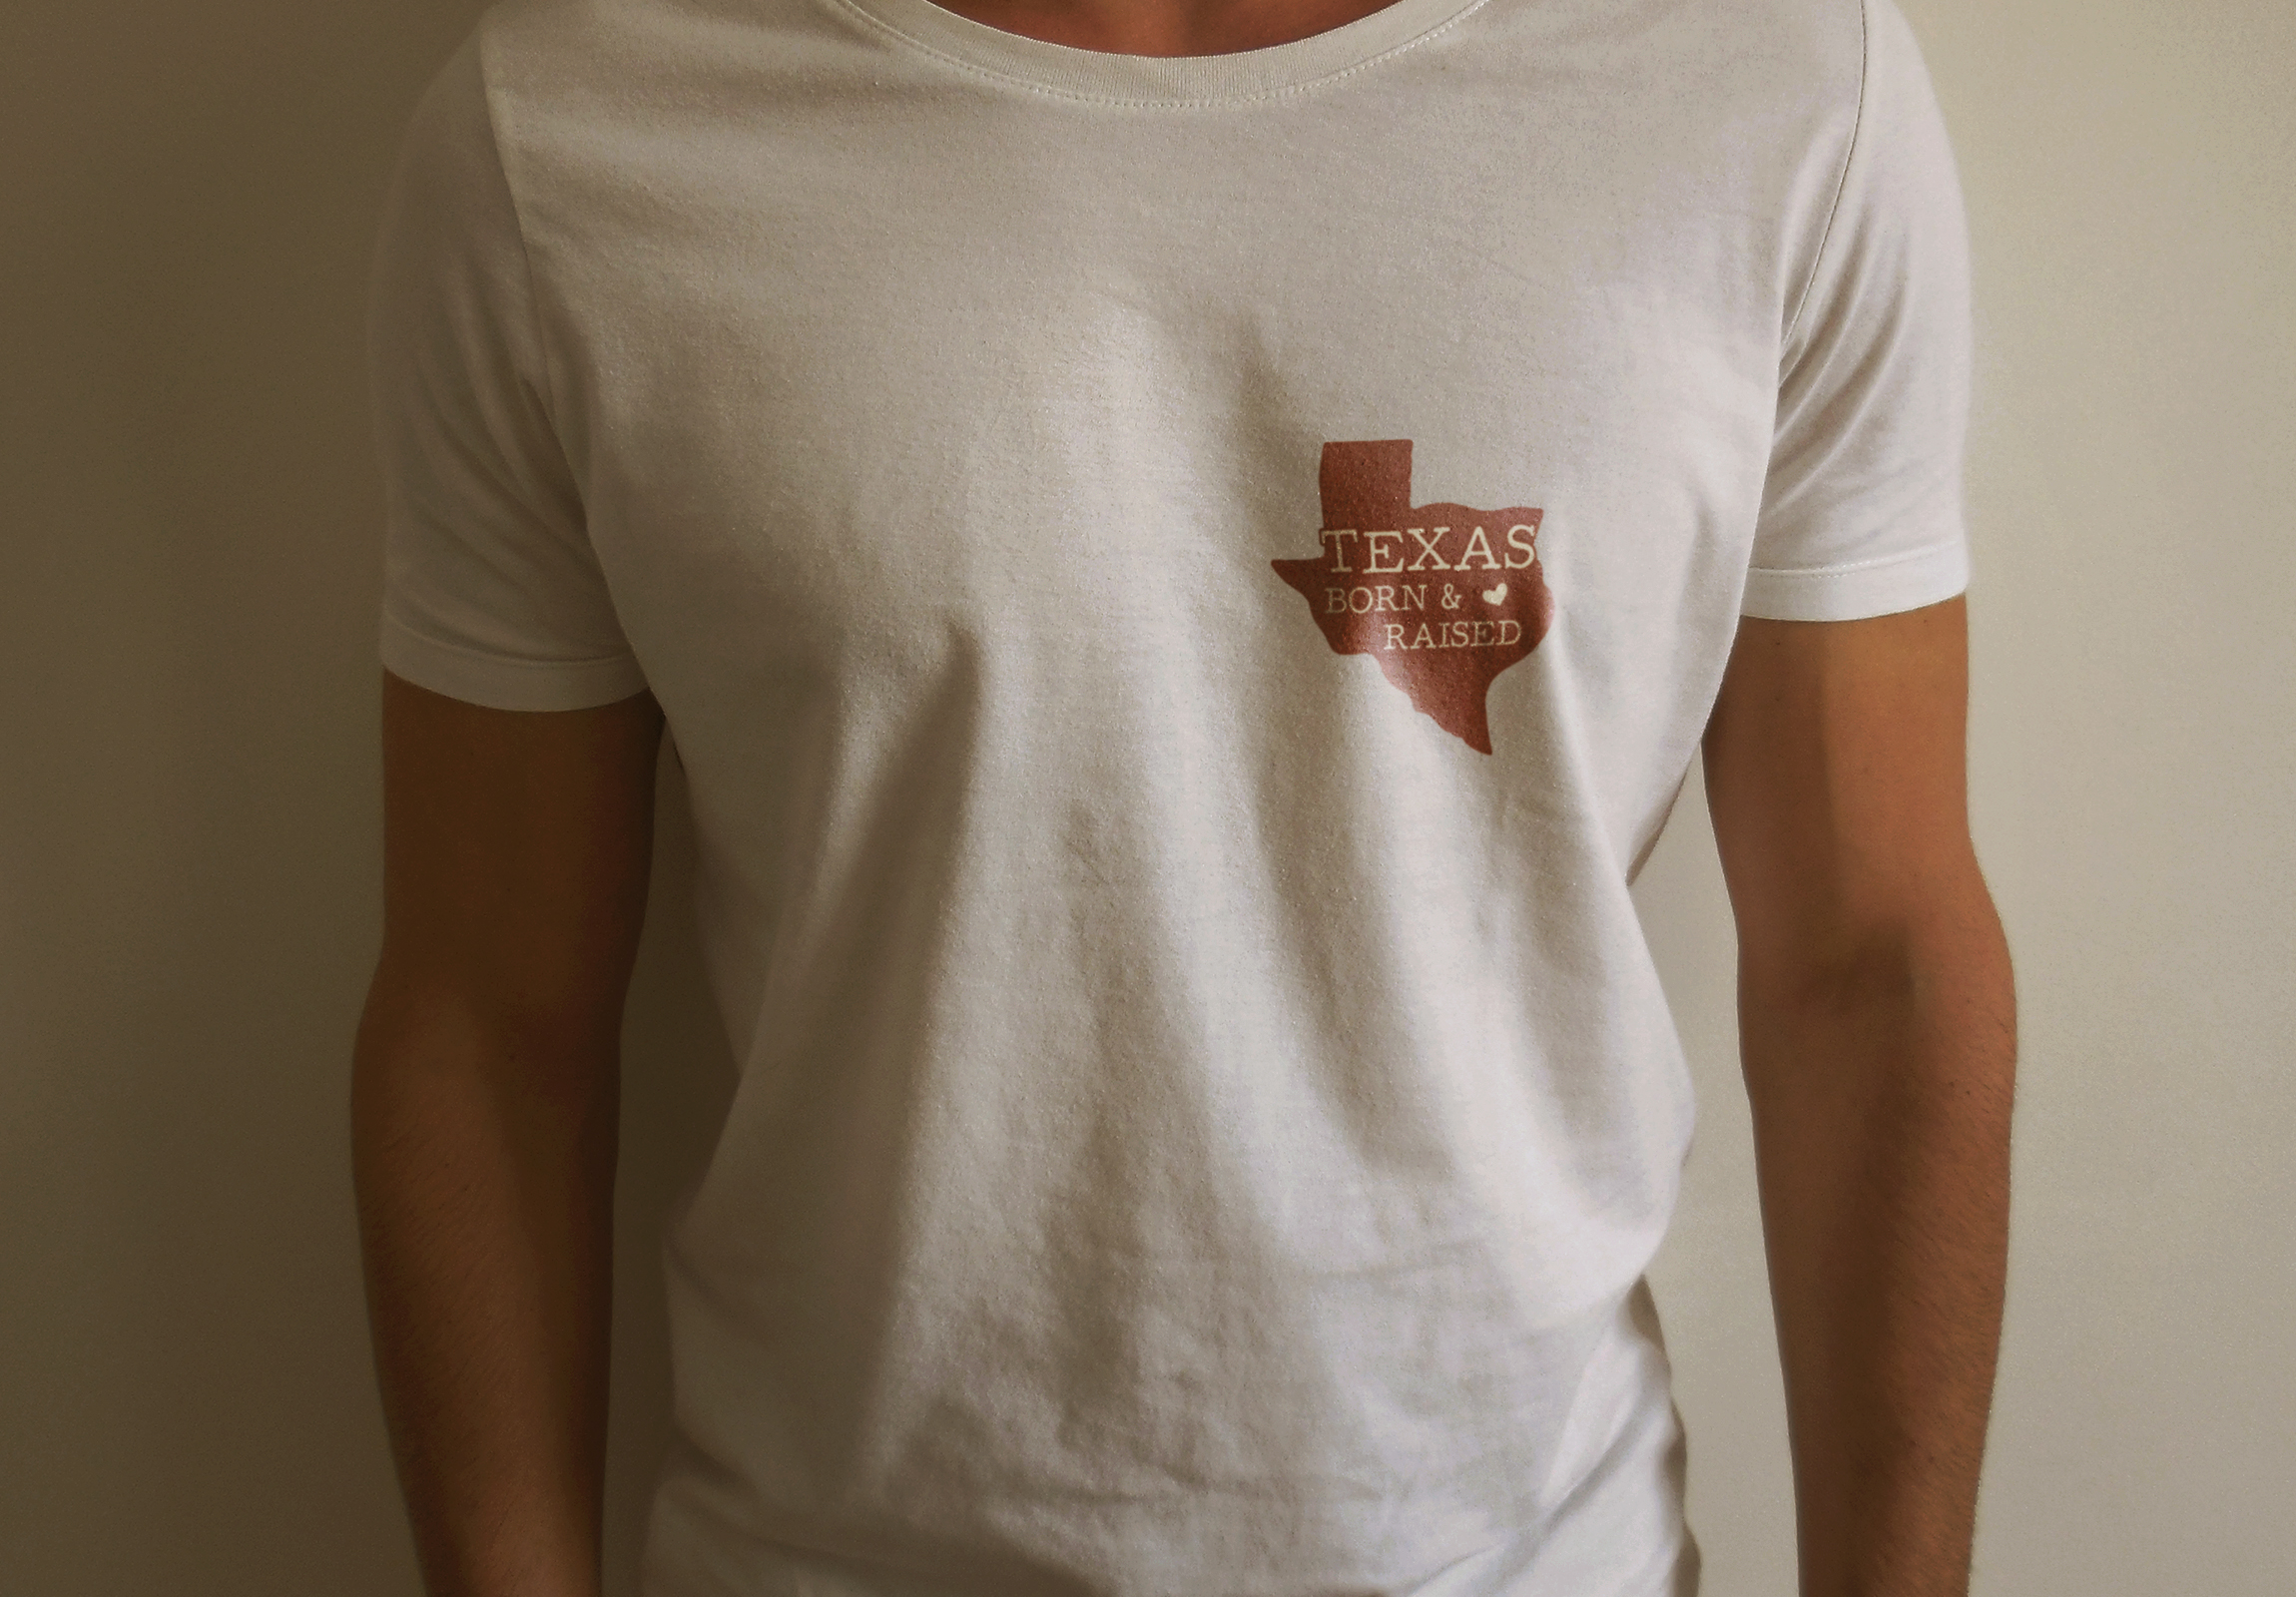 Texas State Badge / Vintage US T-Shirt American SVG Cut File example image 3